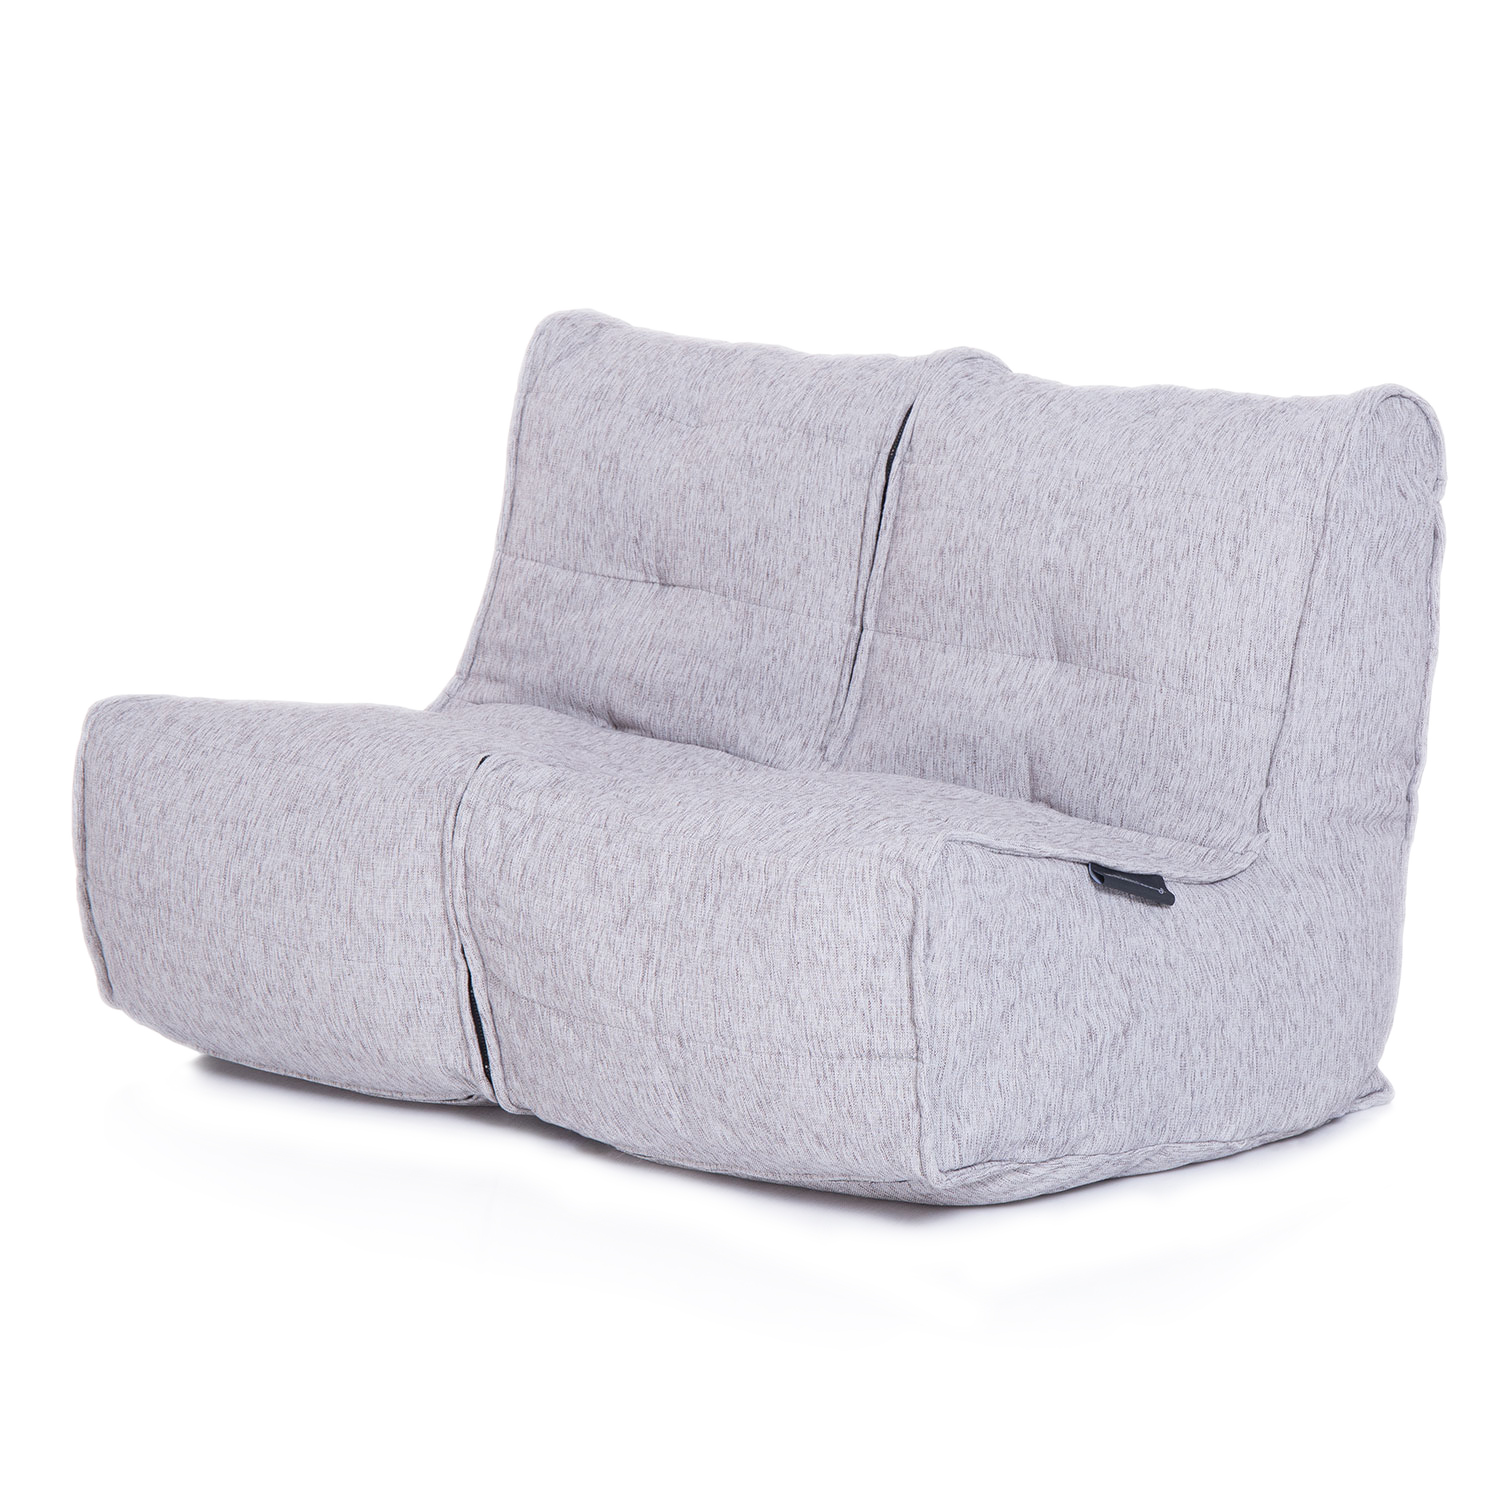 White Couch Covers Australia